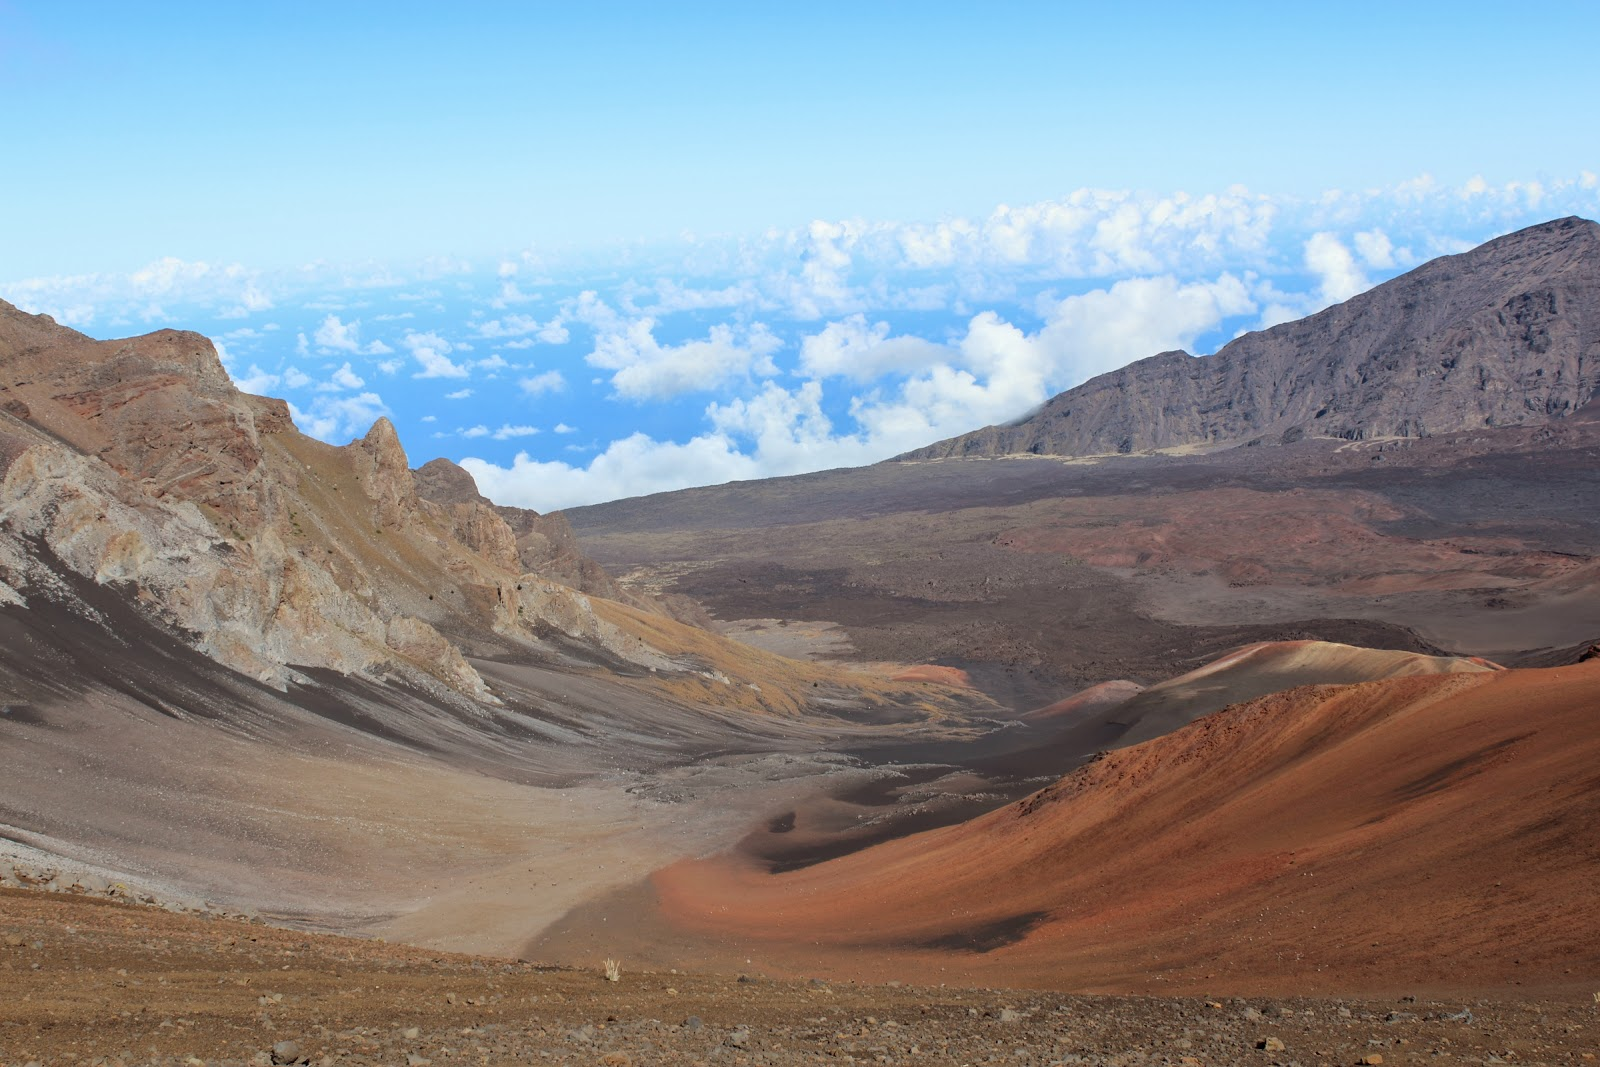 Dormant crater of Haleakalā